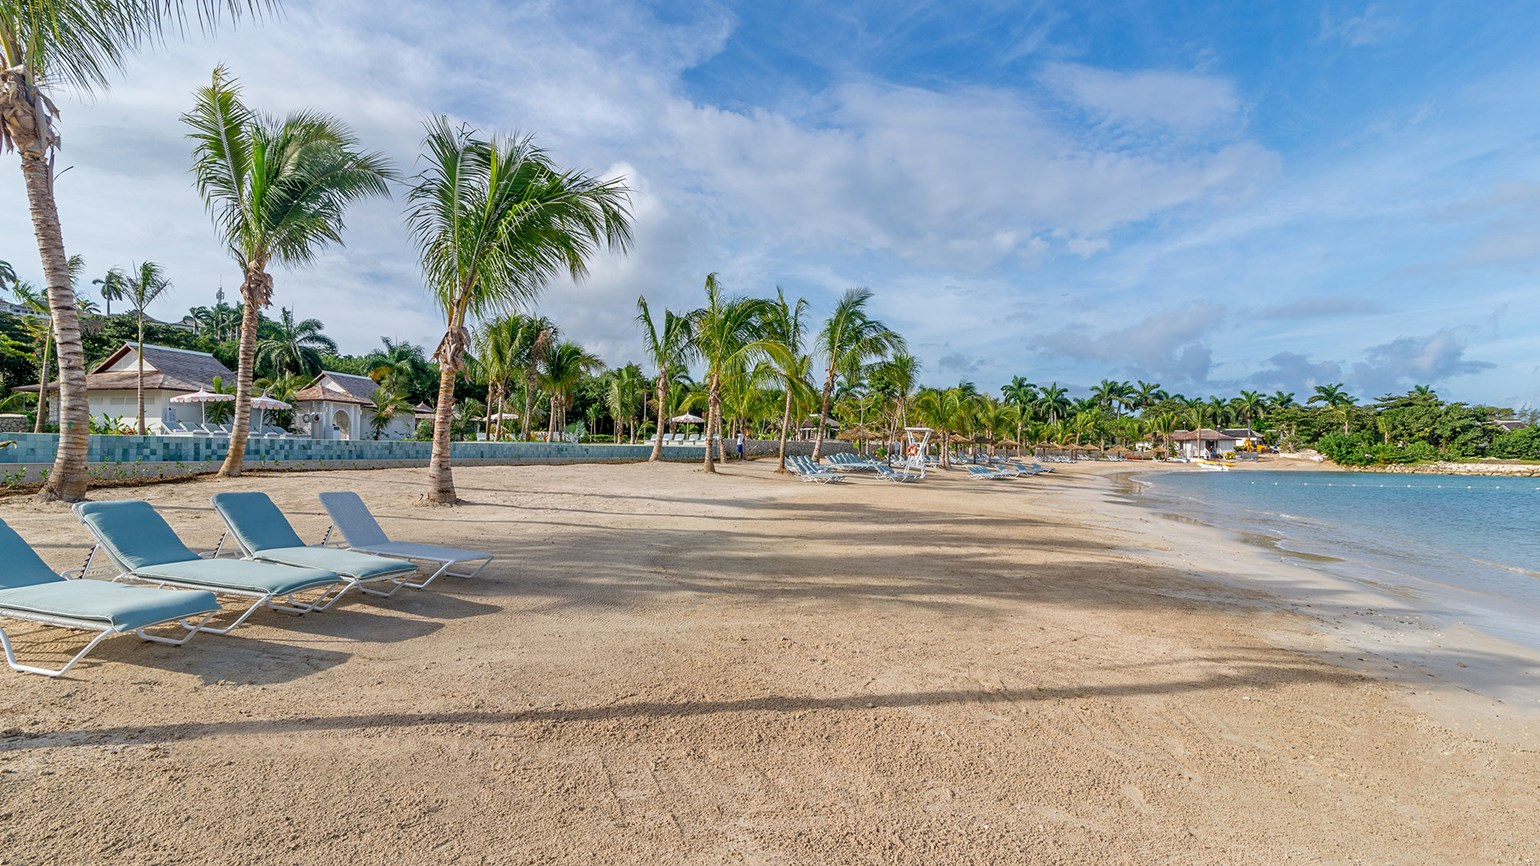 New beach club opens at Jamaica's Tryall Club resort